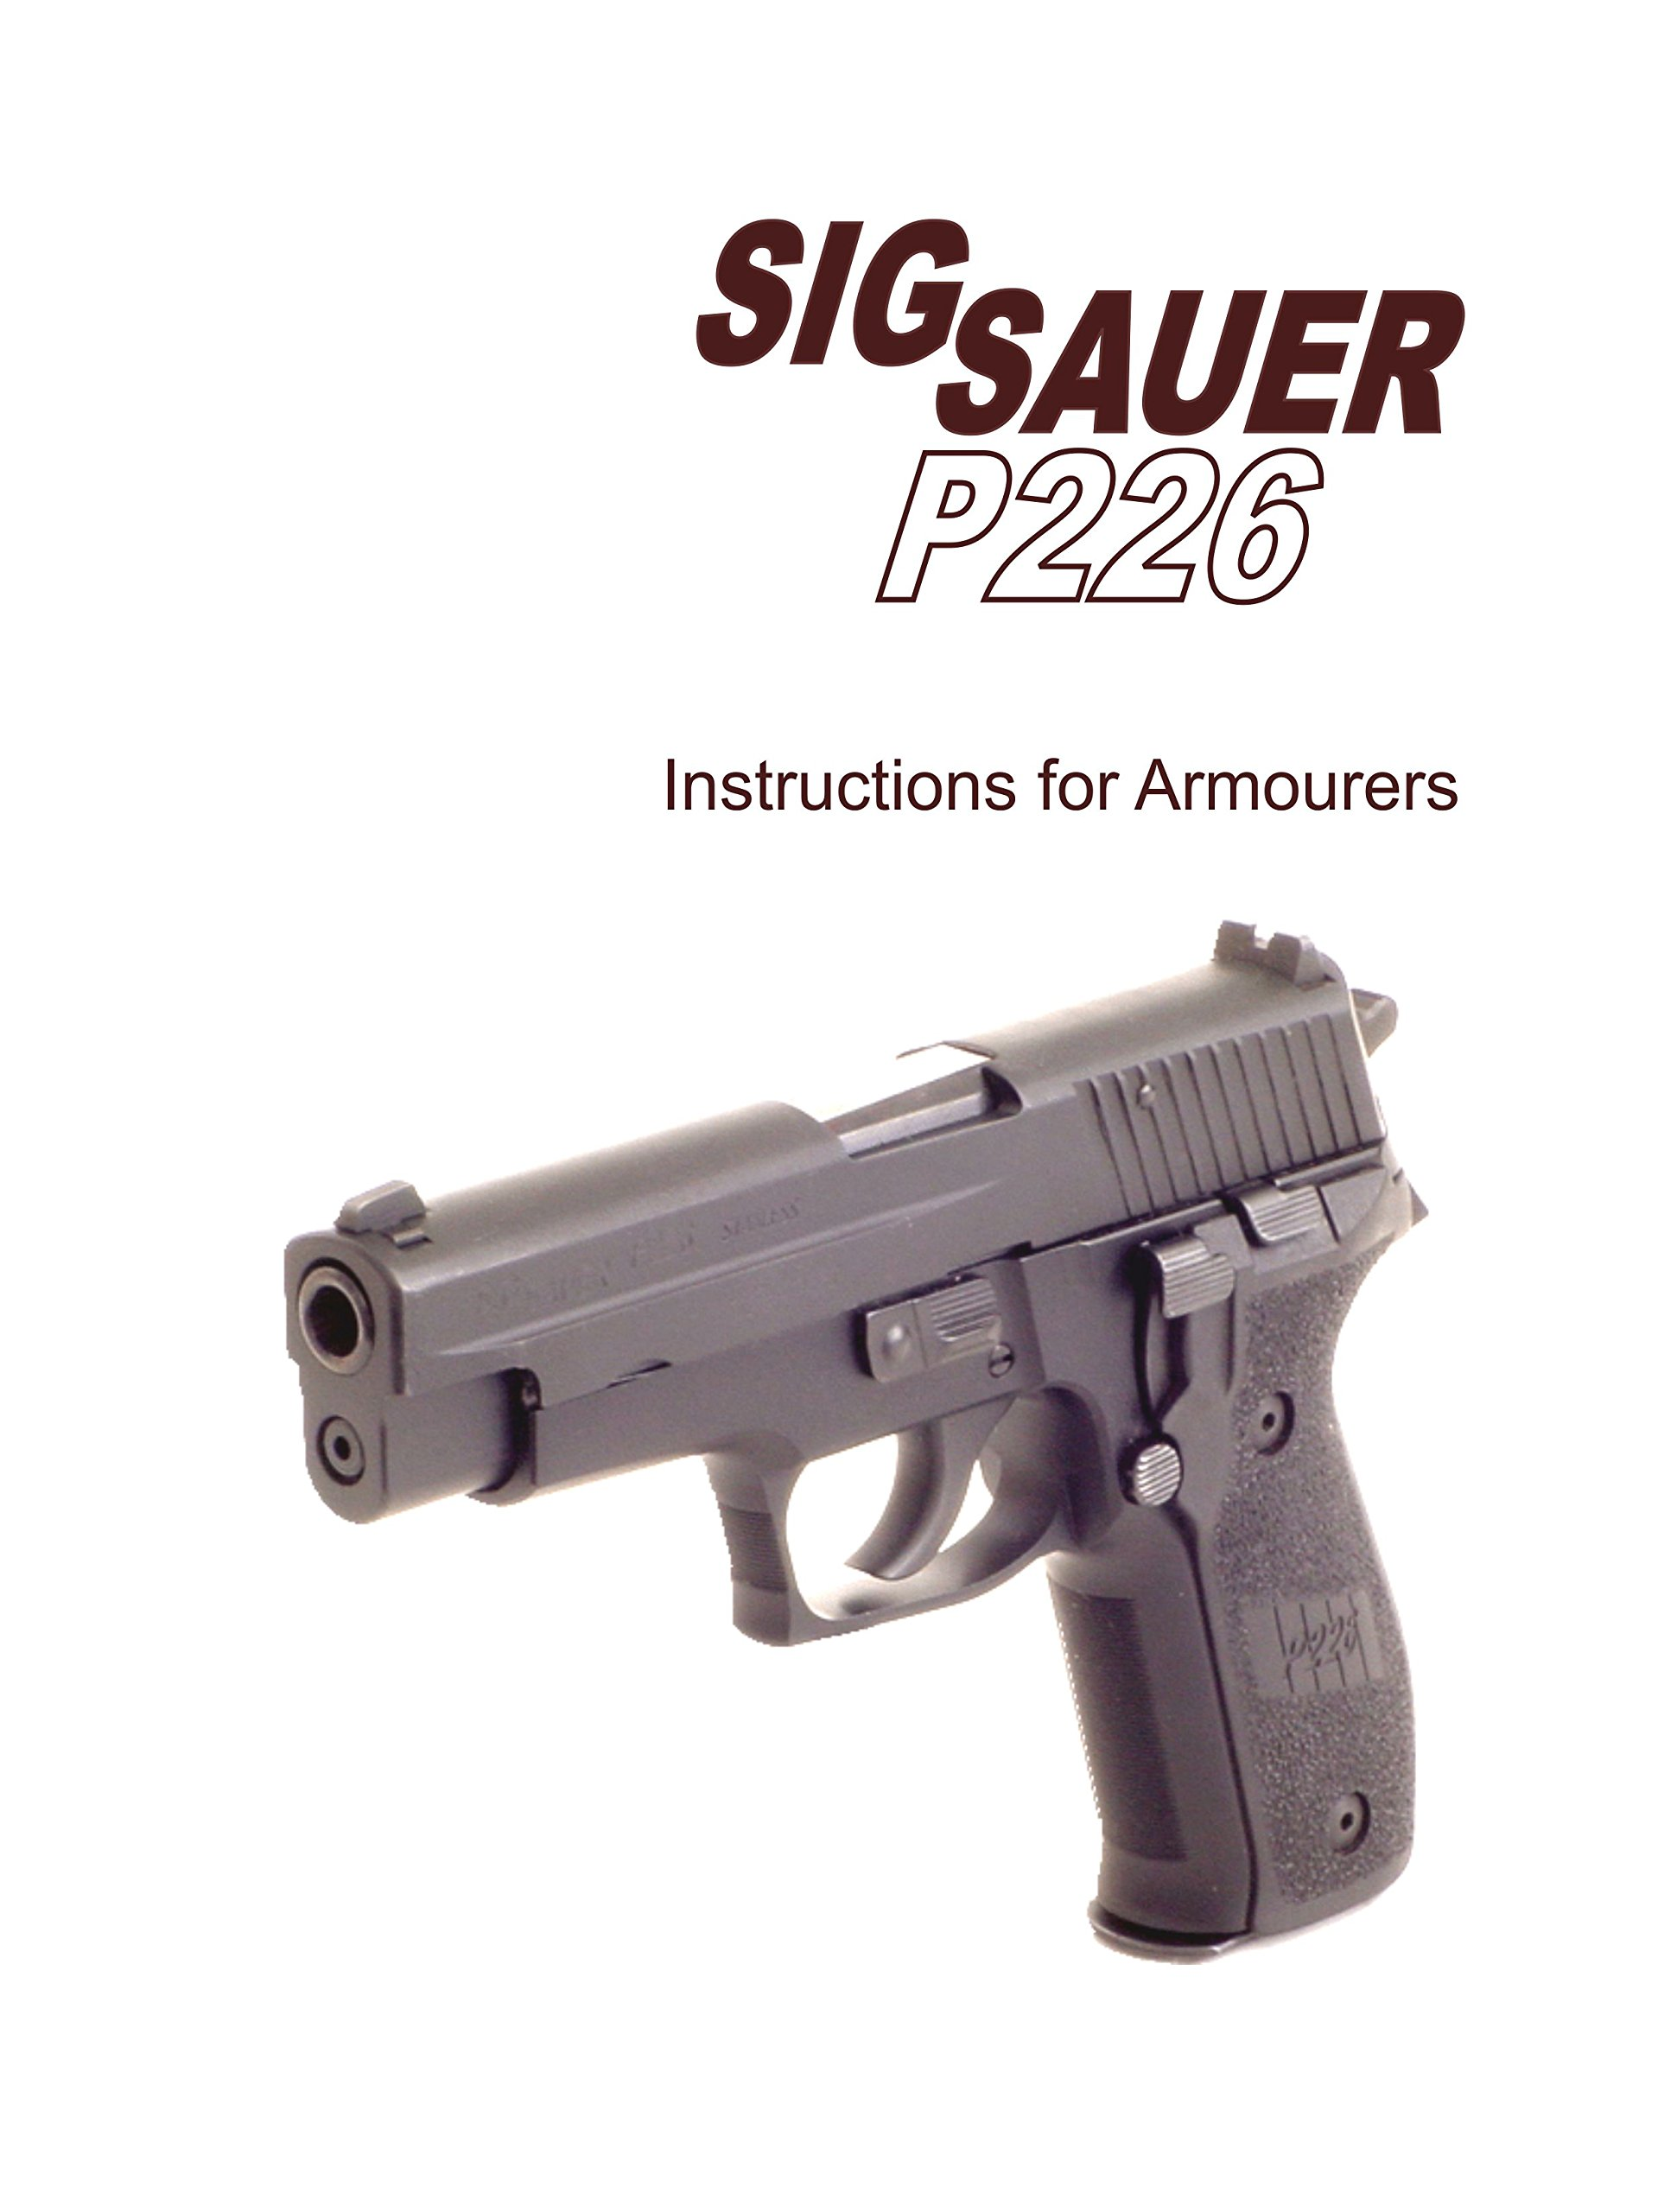 sig sauer p226 instructions for armorers manual: Sig Sauer